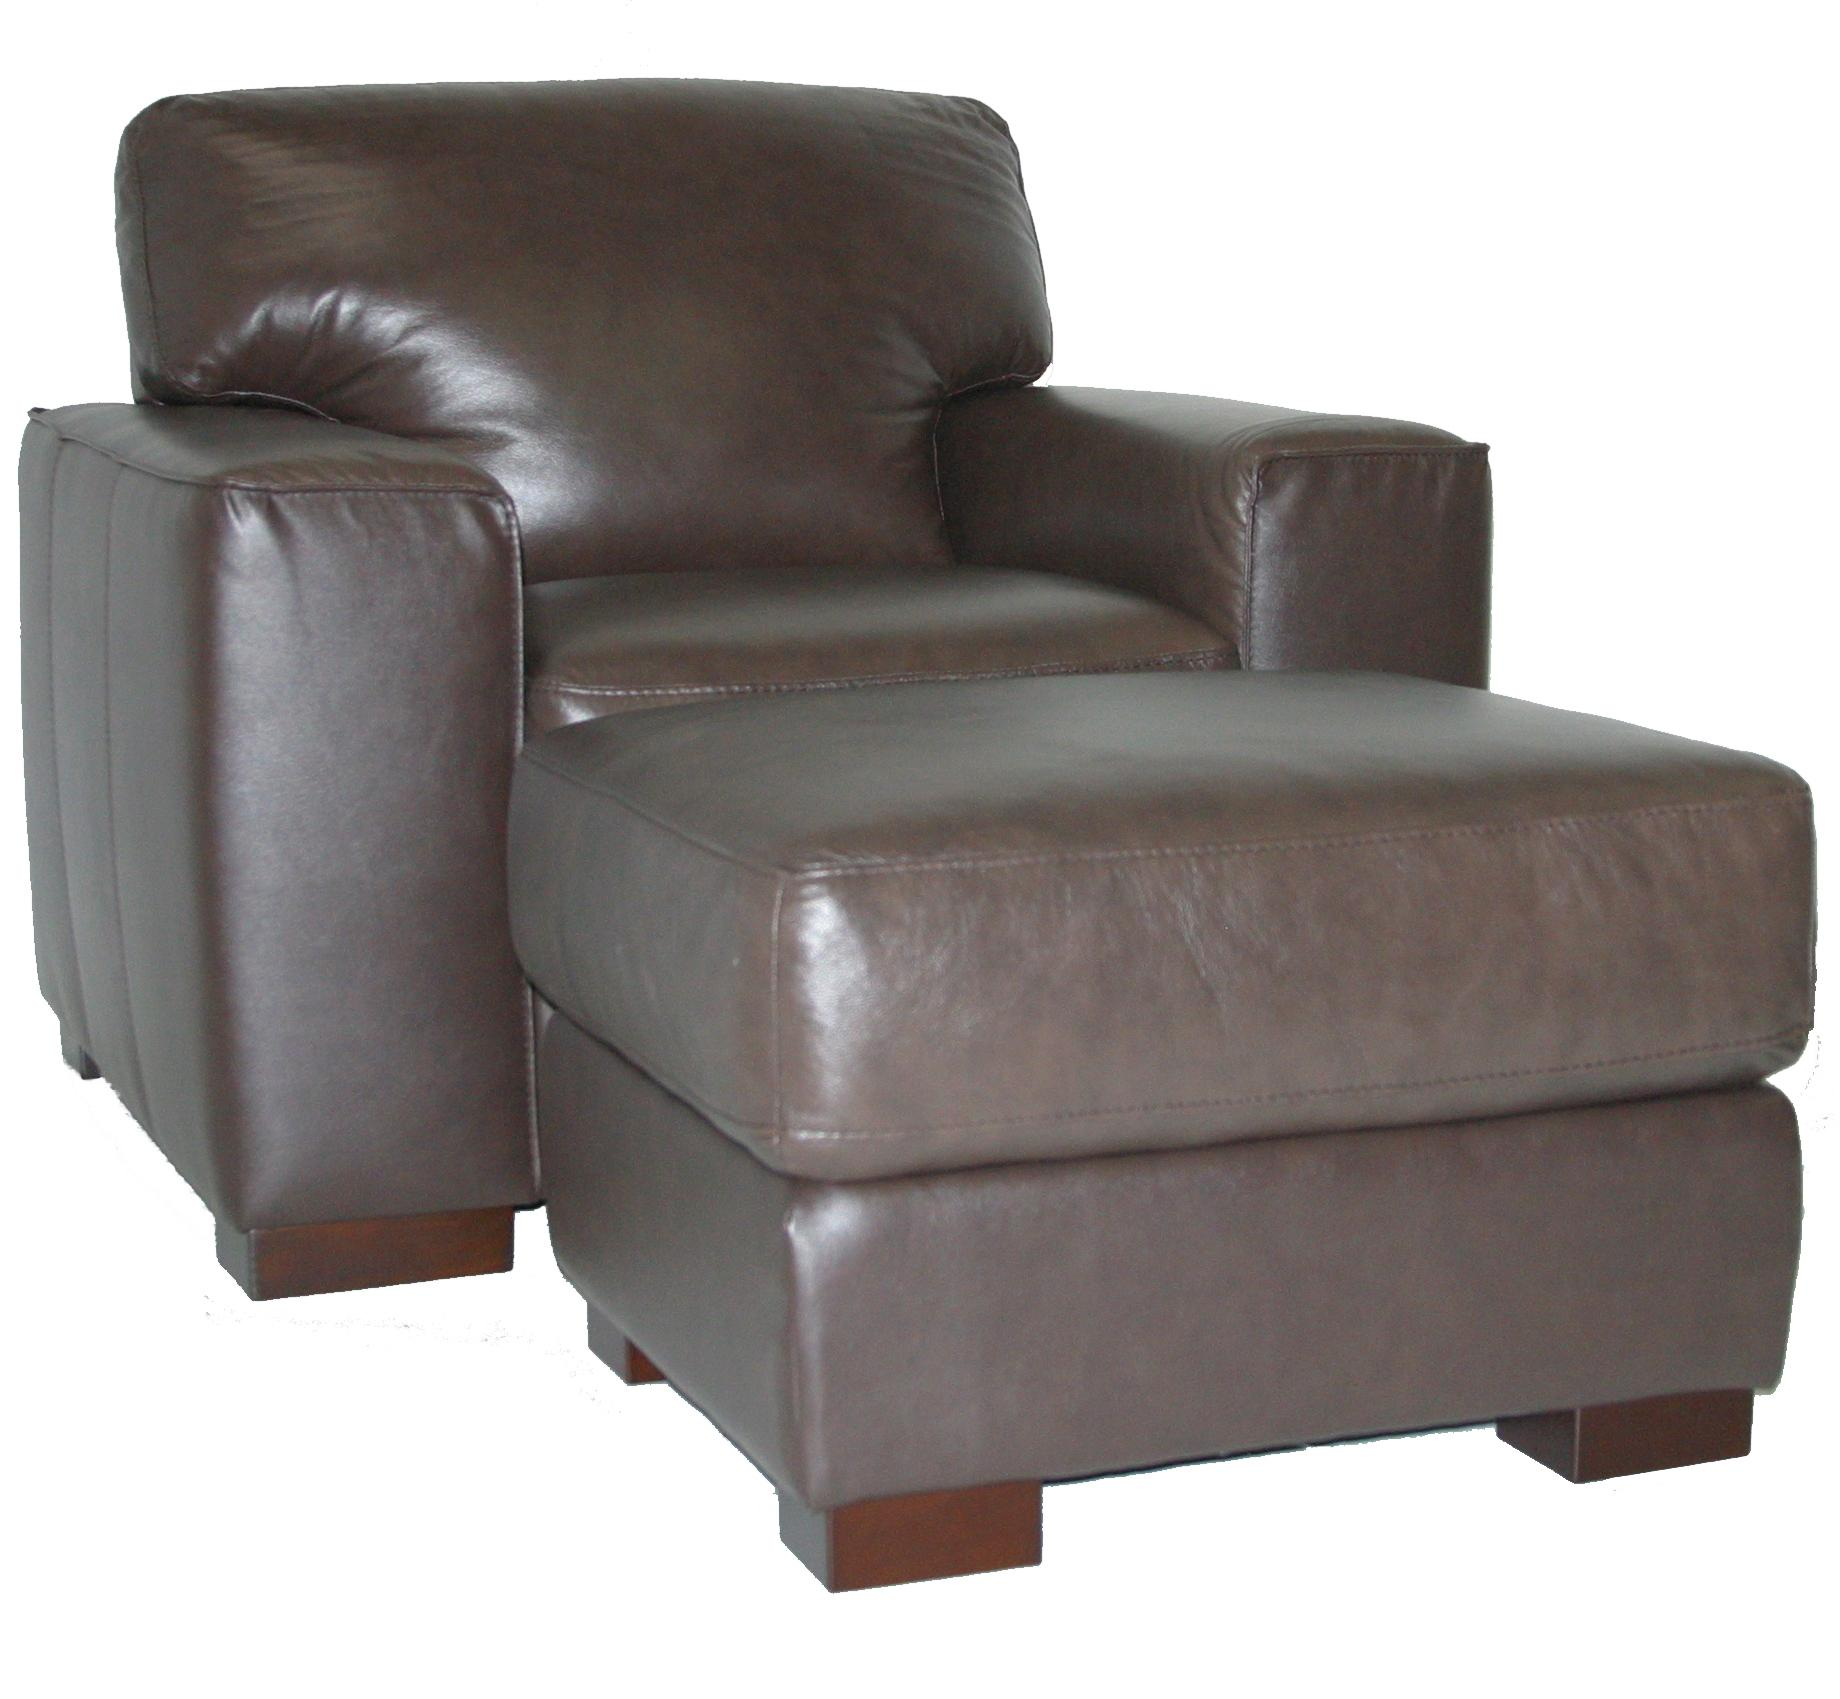 30480 Chair and Ottoman Set by Violino at Furniture Superstore - Rochester, MN